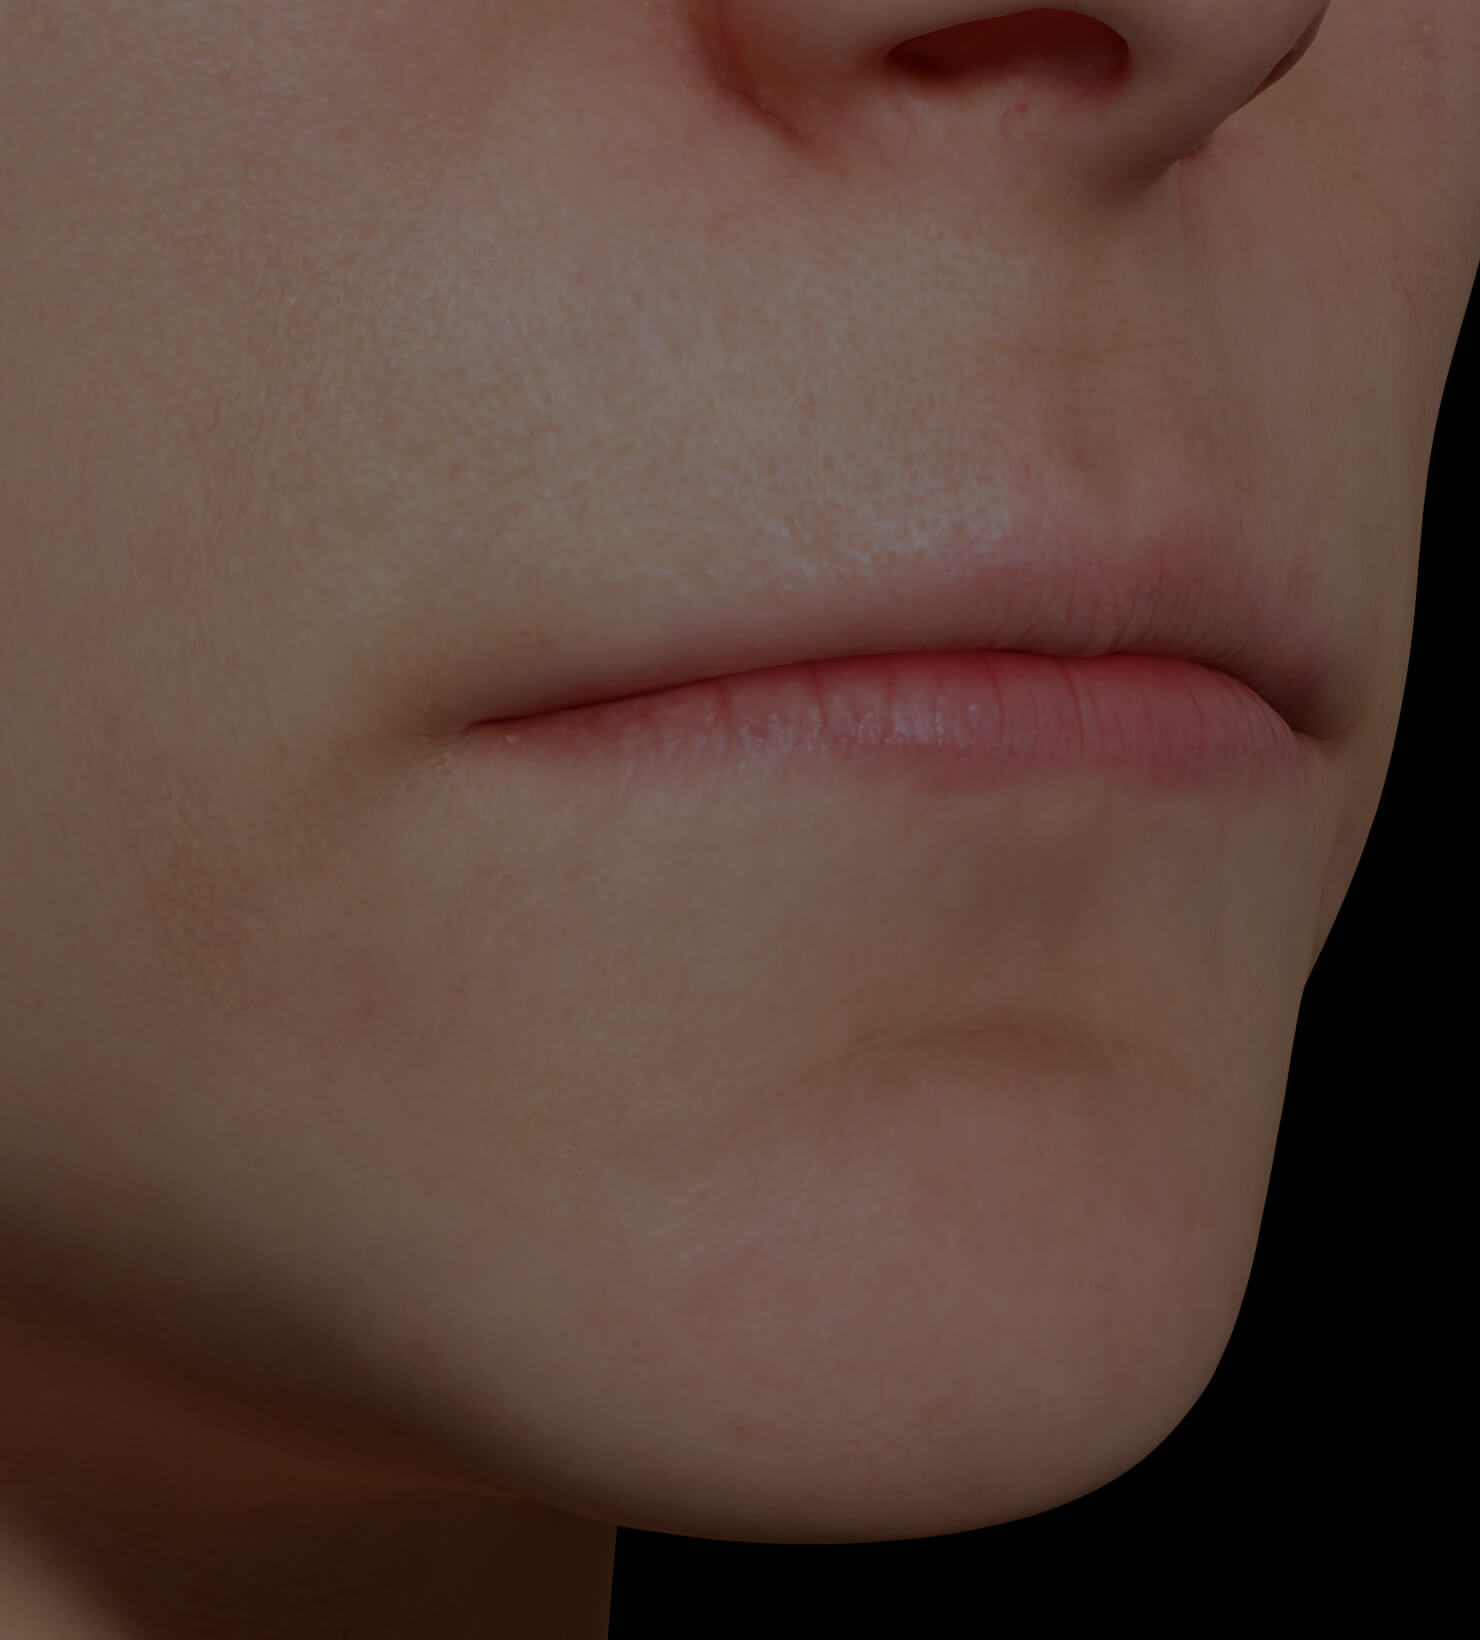 Clinique Chloé female patient with thin lips treated with dermal fillers for lip augmentation